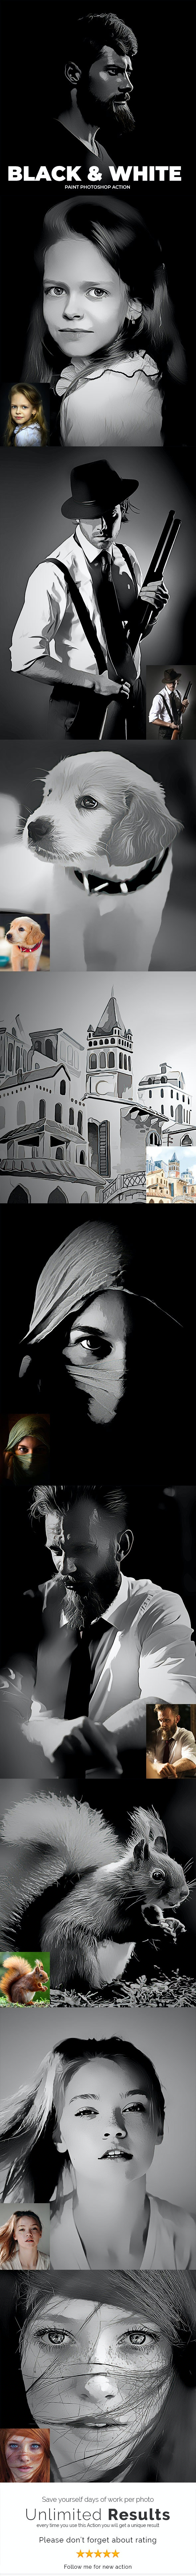 Black & White Paint Photoshop Action - Photo Effects Actions